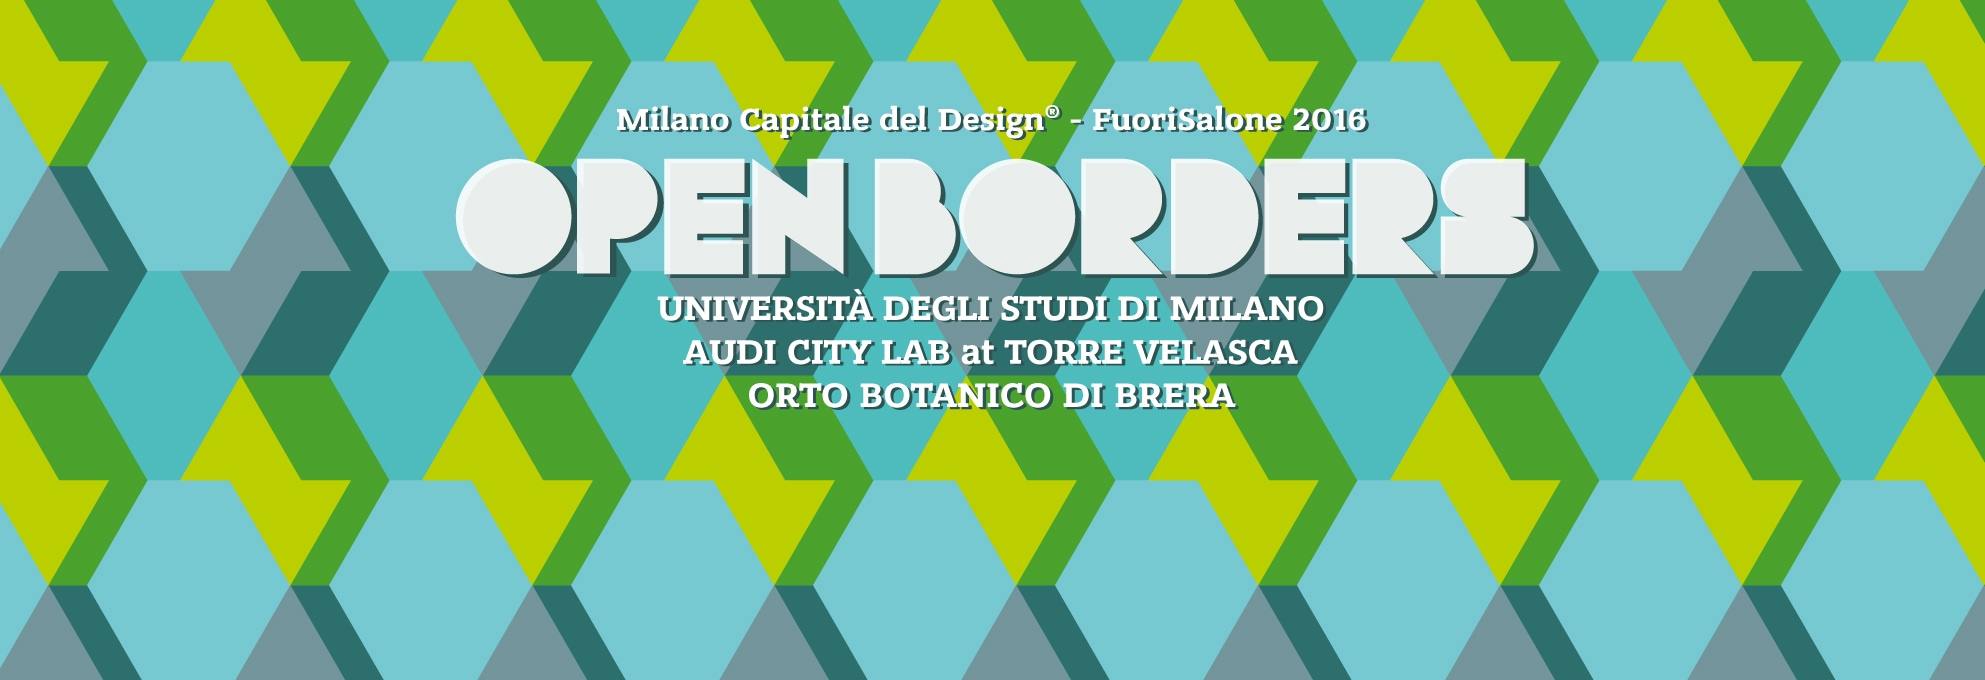 FuoriSalone 2016 OPEN BORDERS, an event by INTERNI